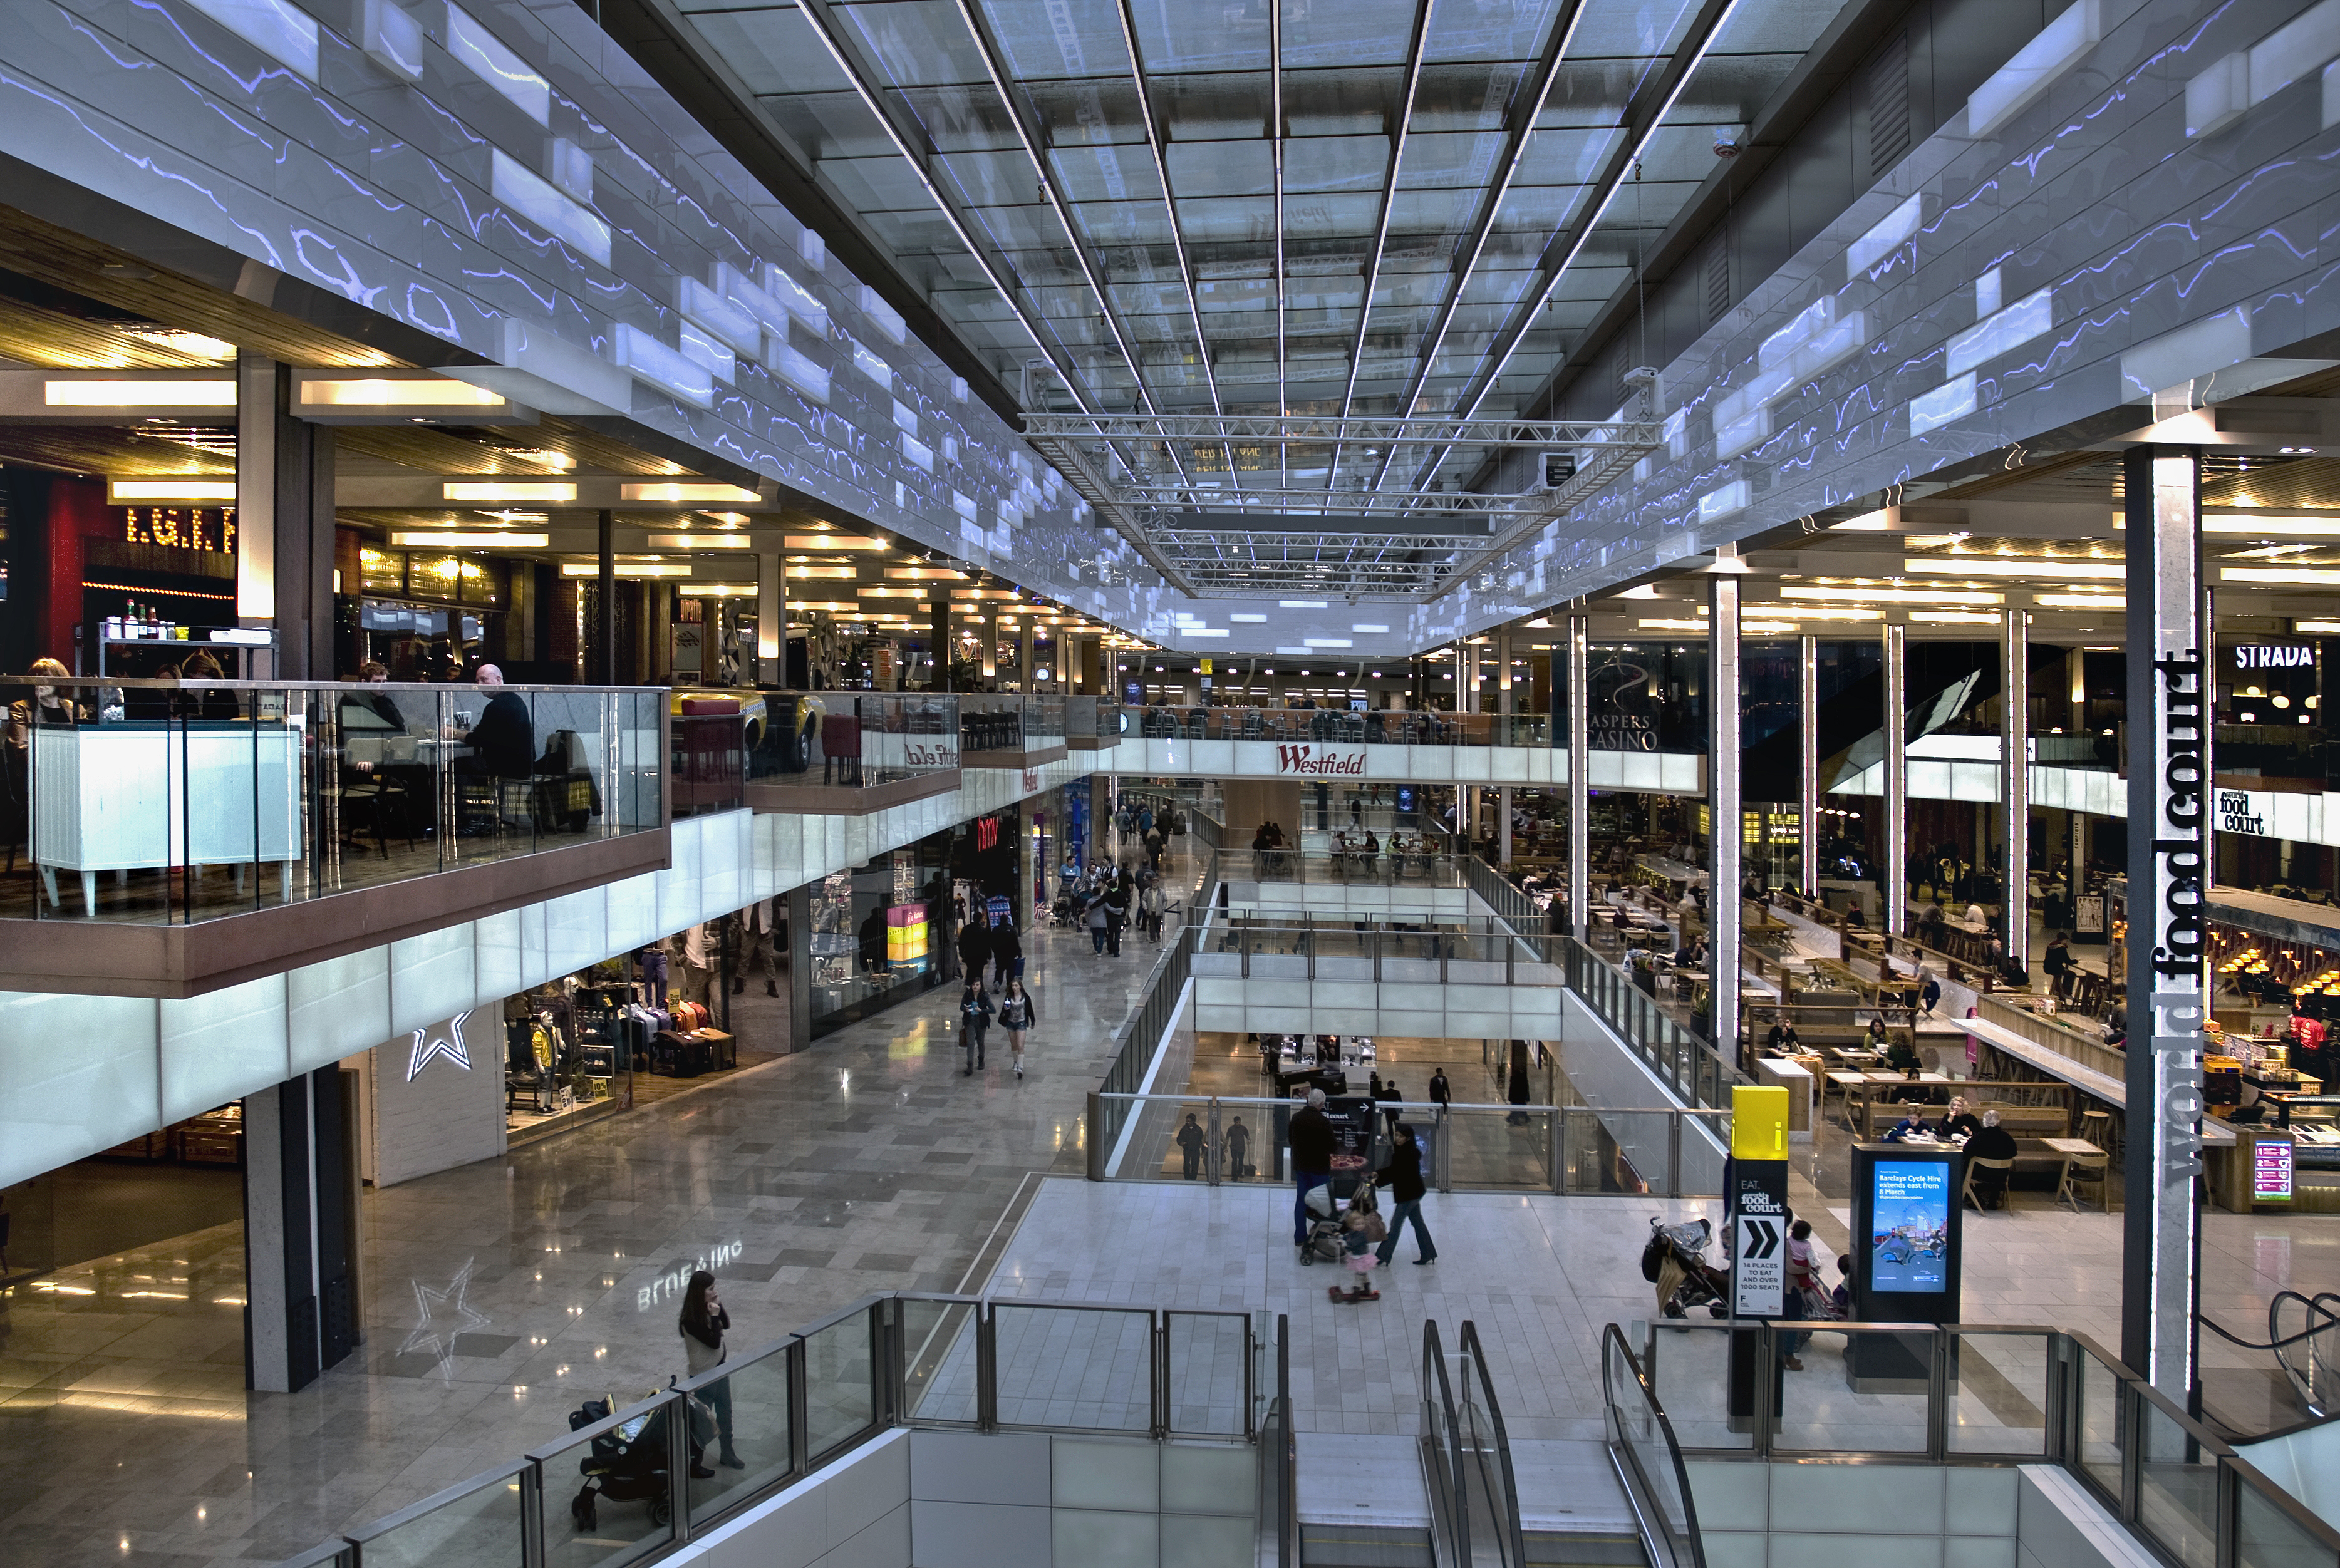 Westfield London is a pioneering shopping and leisure destination to shop, to eat, and to meet. Find M&S, Topshop, Zara, House of Fraser, Waitrose and over luxury, premium and high street retailers from more than 15 different countries within the architecturally stunning centre.